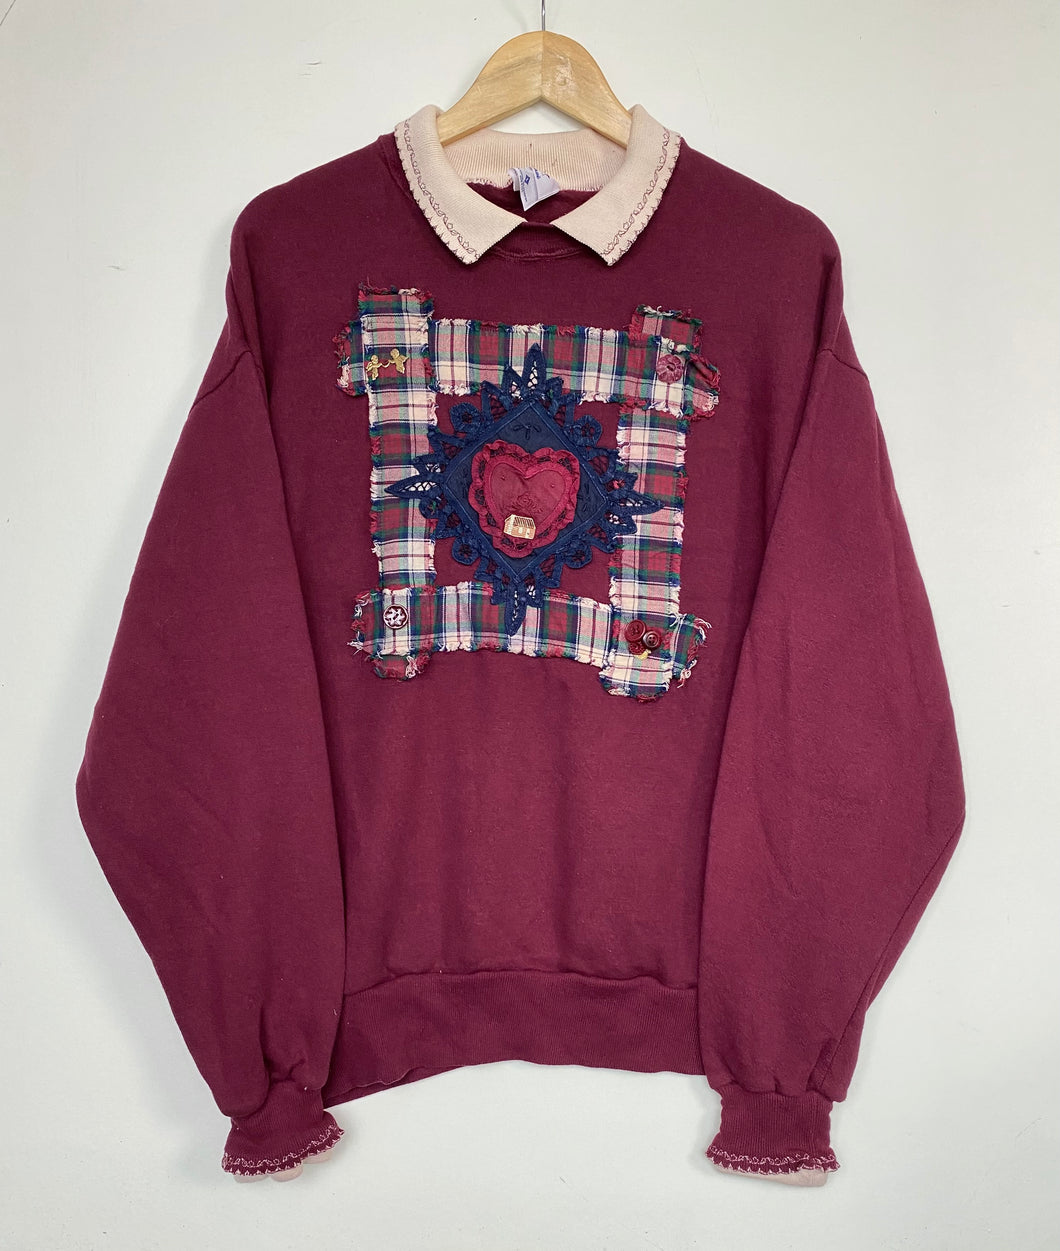 Embroidered 'Heart' sweatshirt (L)